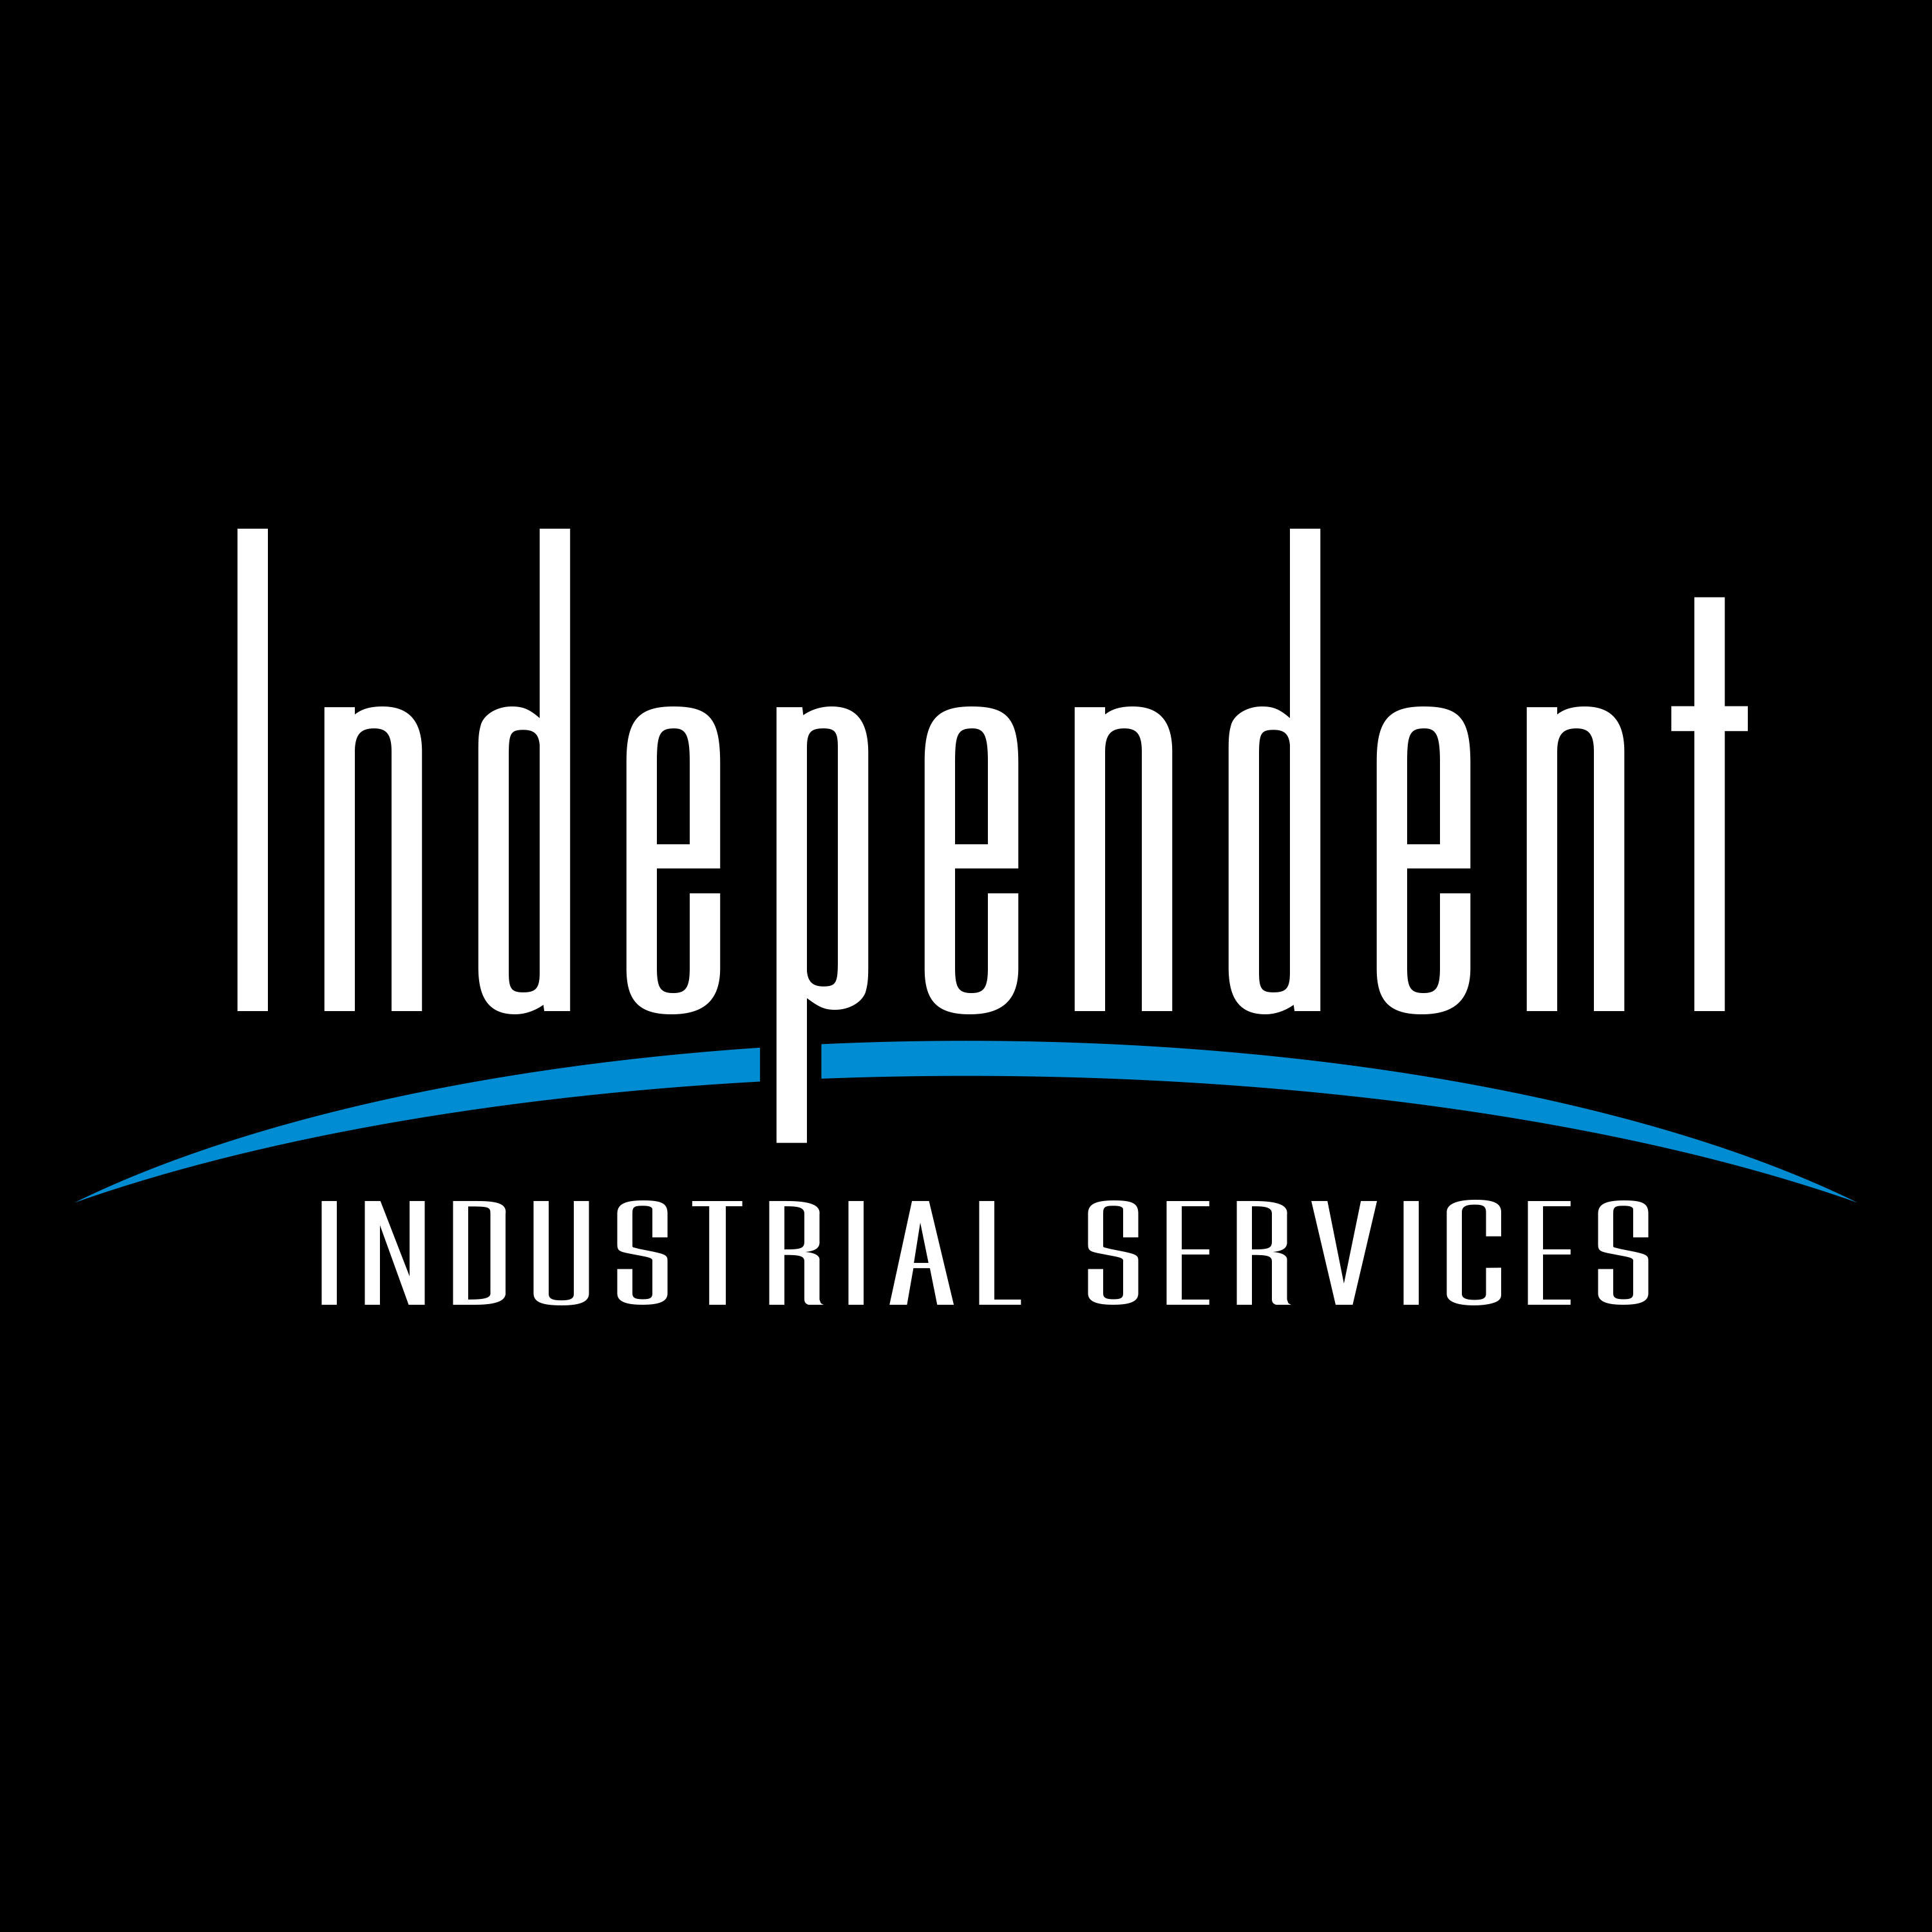 Independent Industrial Services